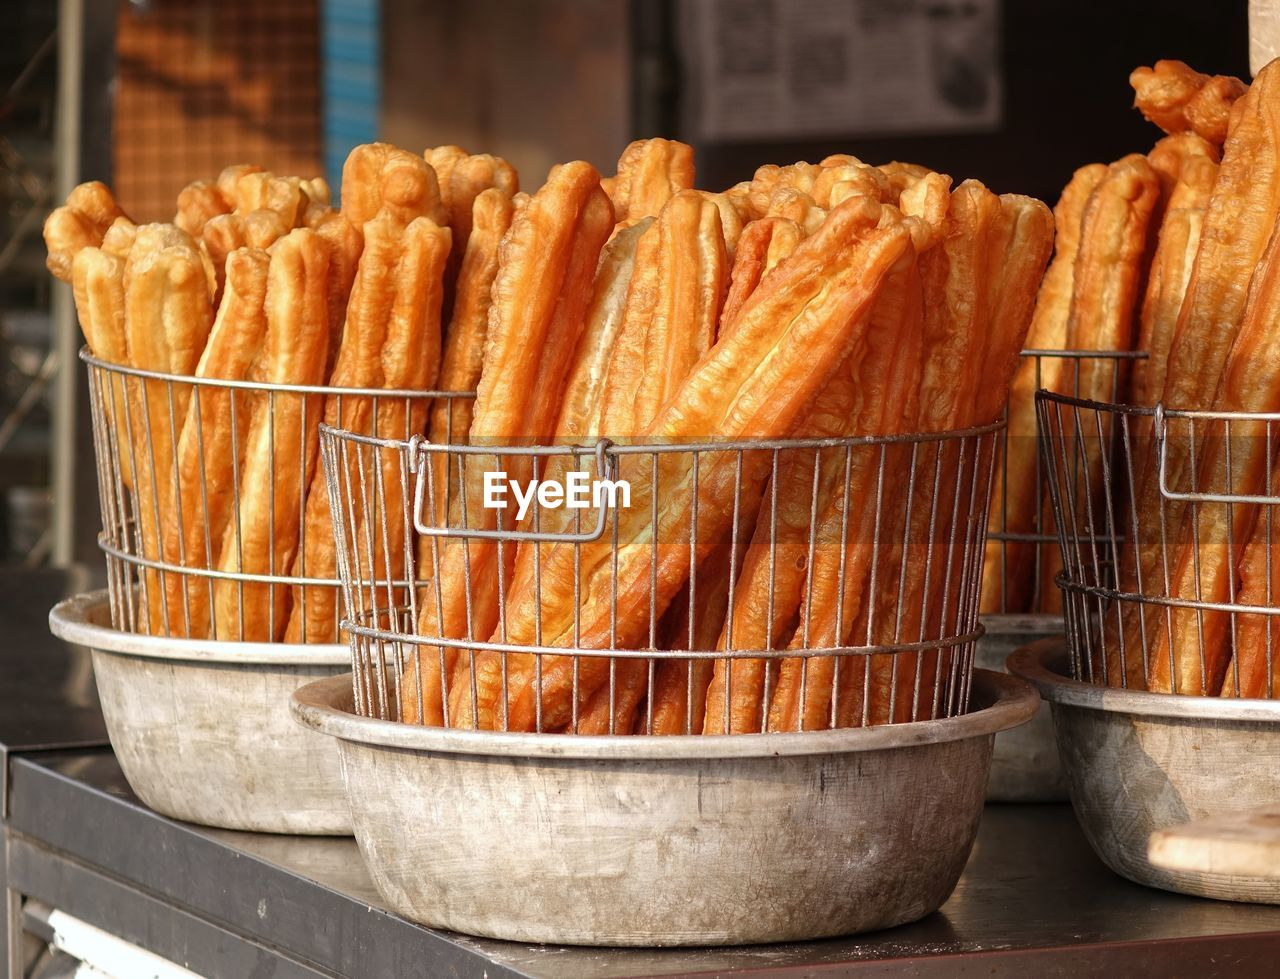 Fried Food For Sale At Market Stall